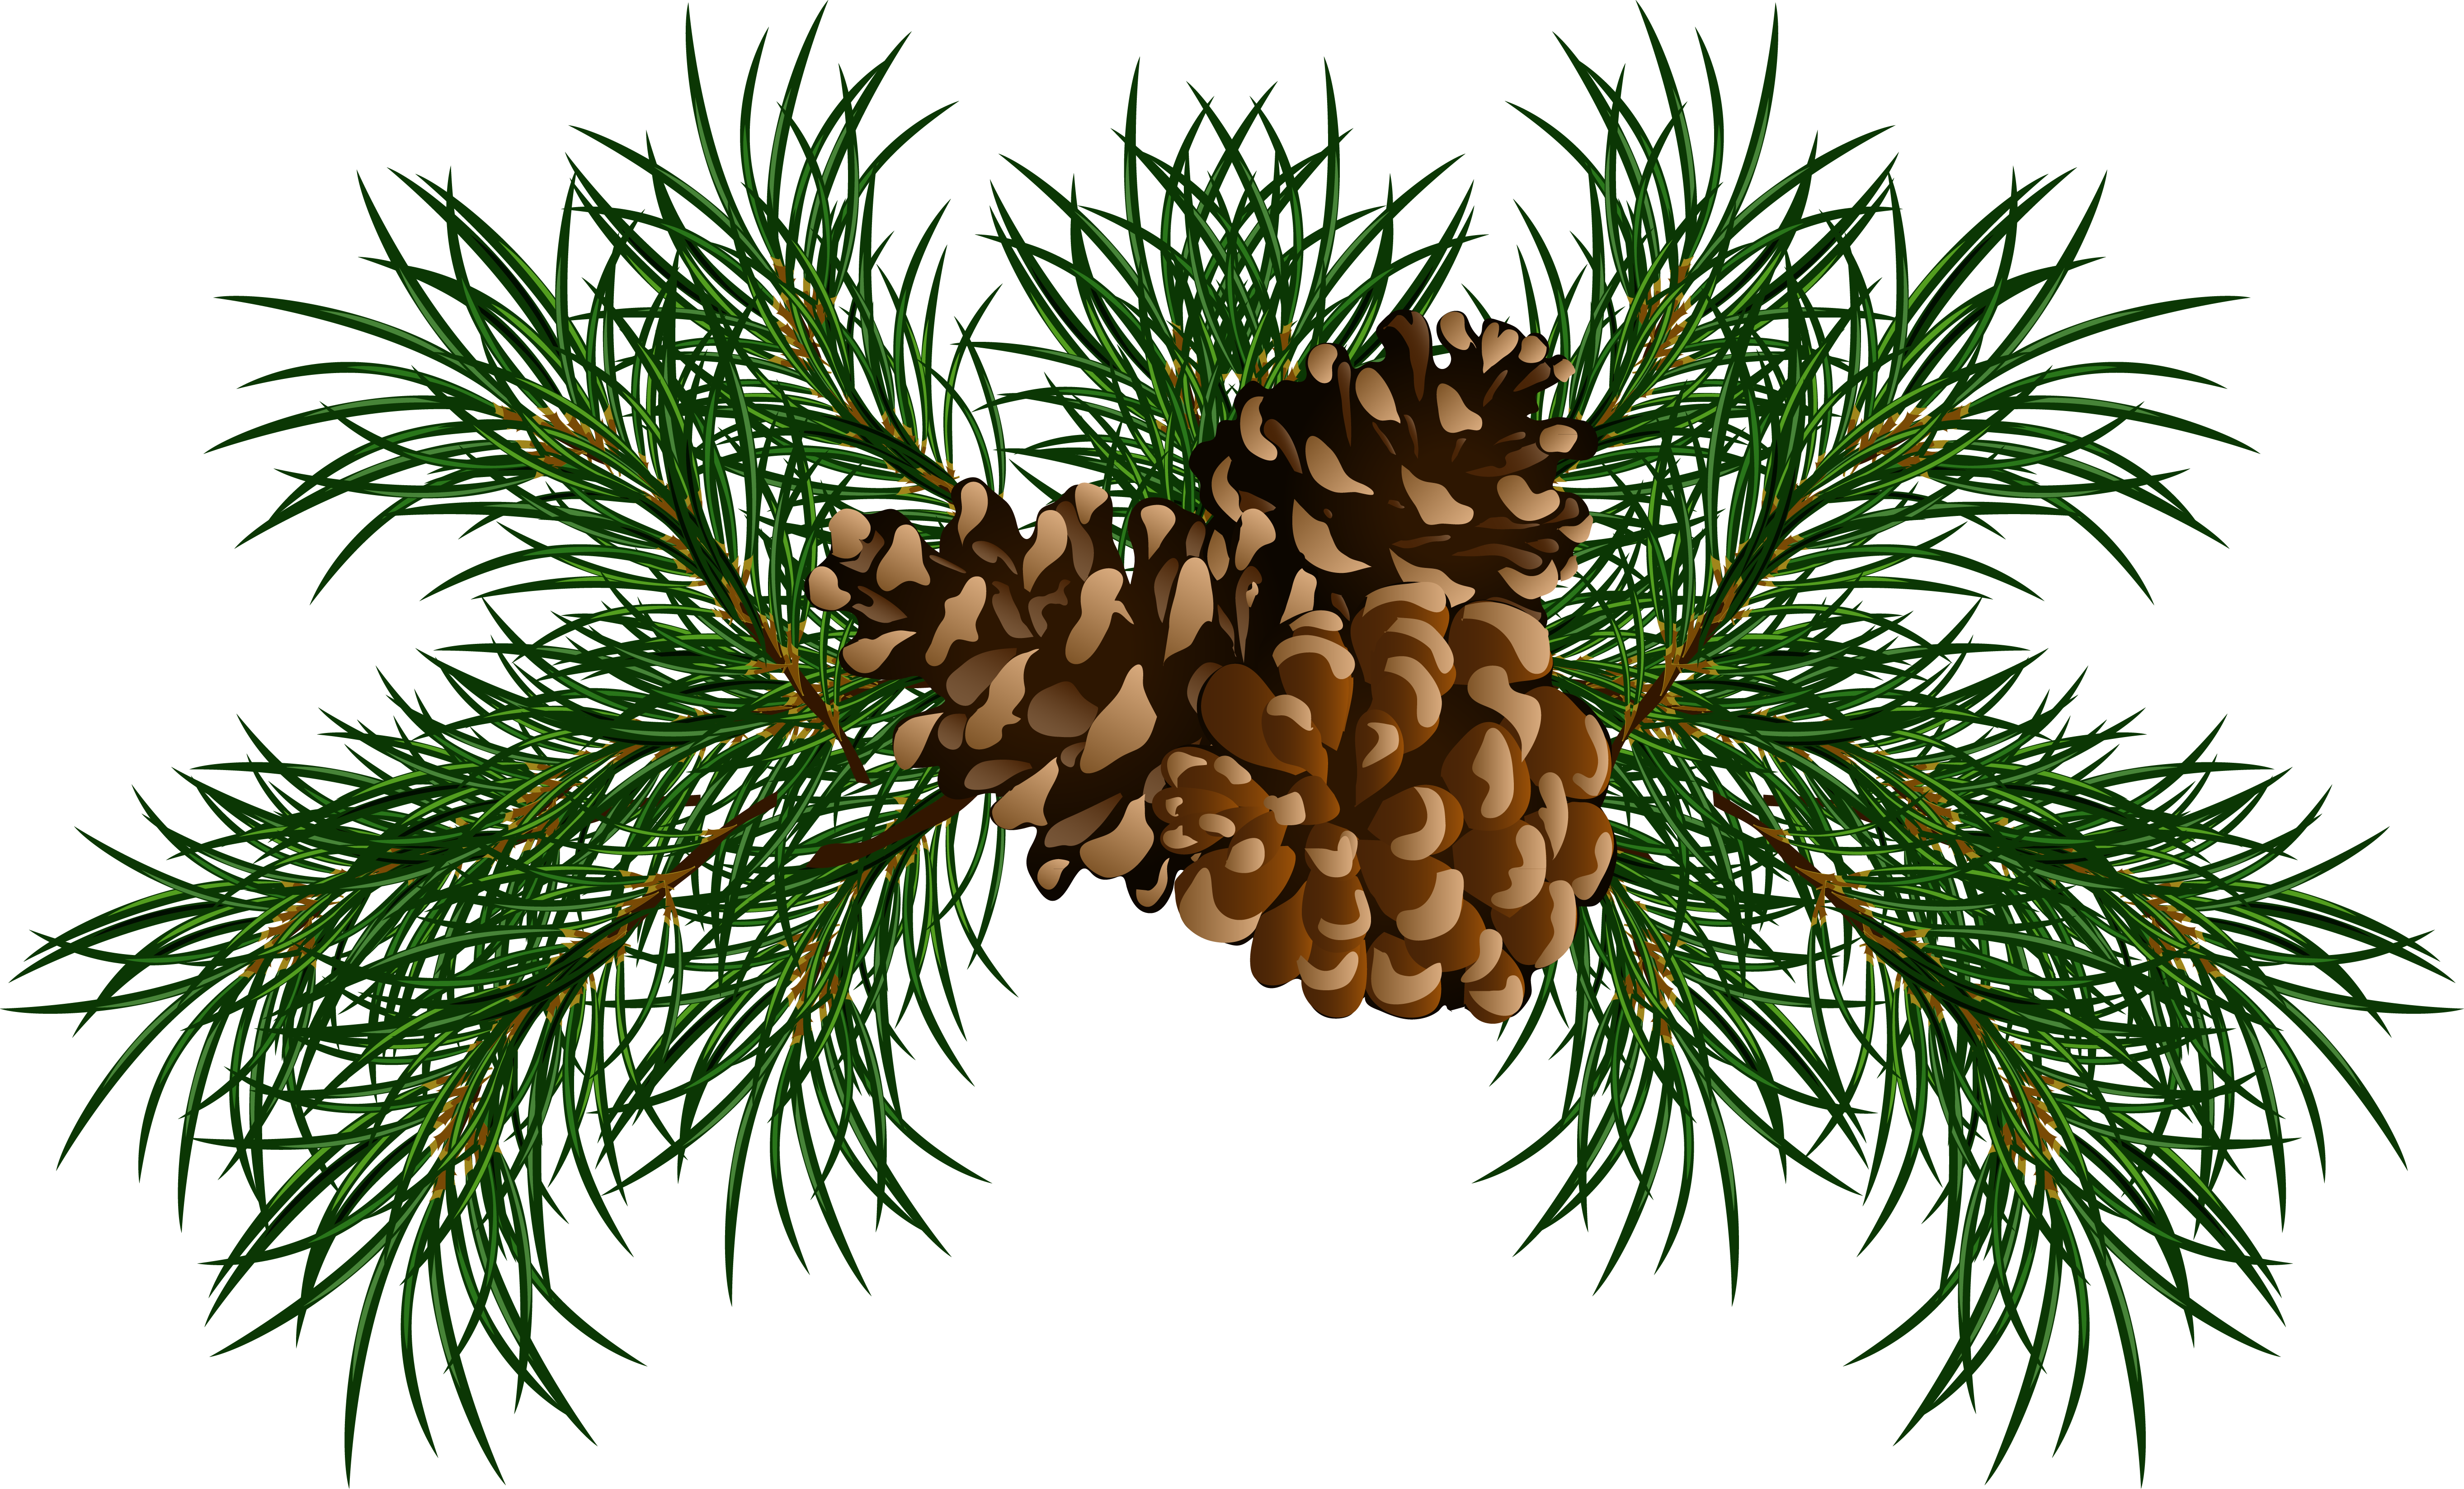 Branch clipart bough Pine Clipart Cones Boughs cliparts